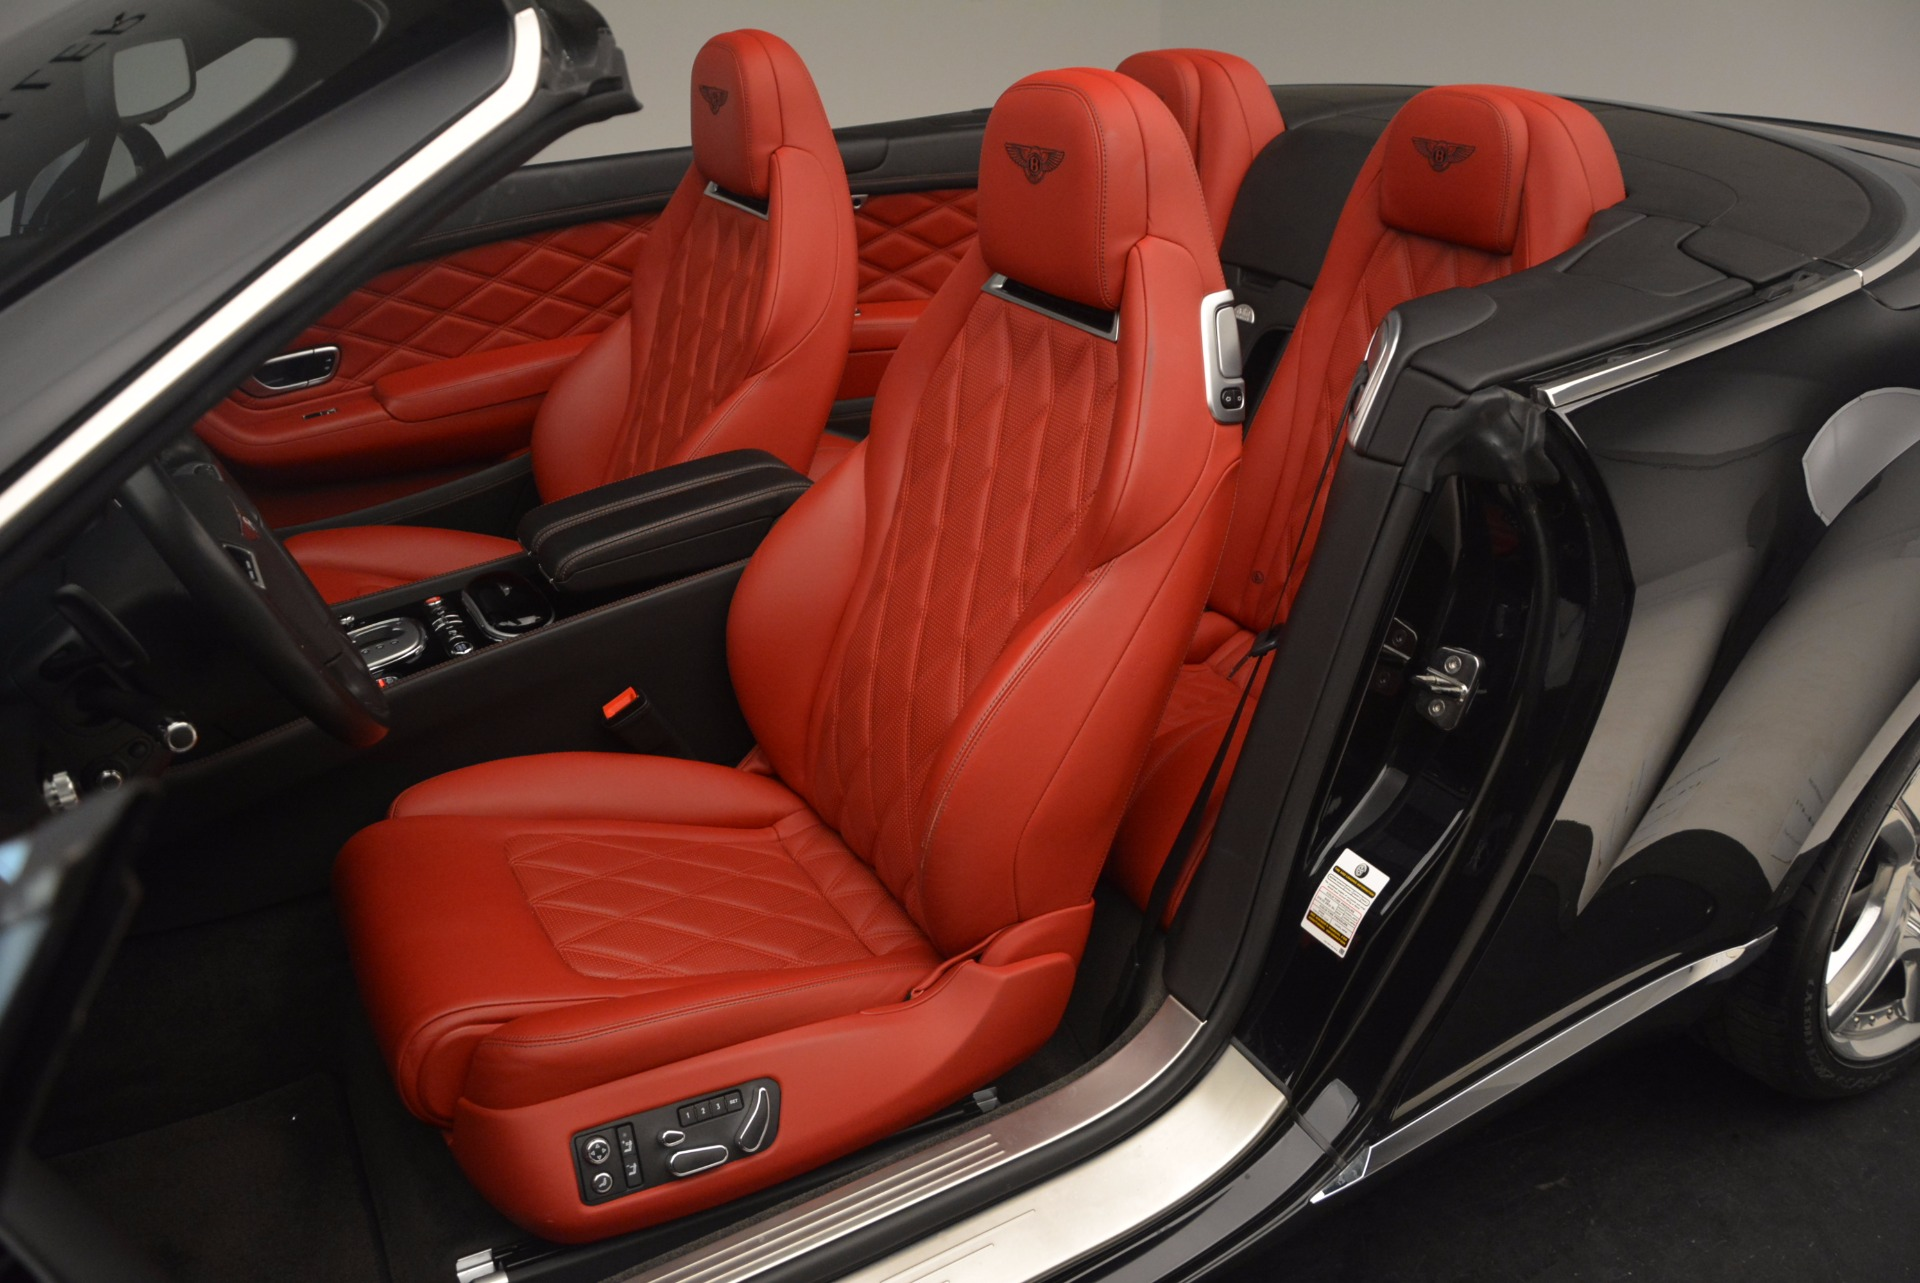 Used 2012 Bentley Continental GT W12 Convertible For Sale In Greenwich, CT. Alfa Romeo of Greenwich, 7188 1104_p37